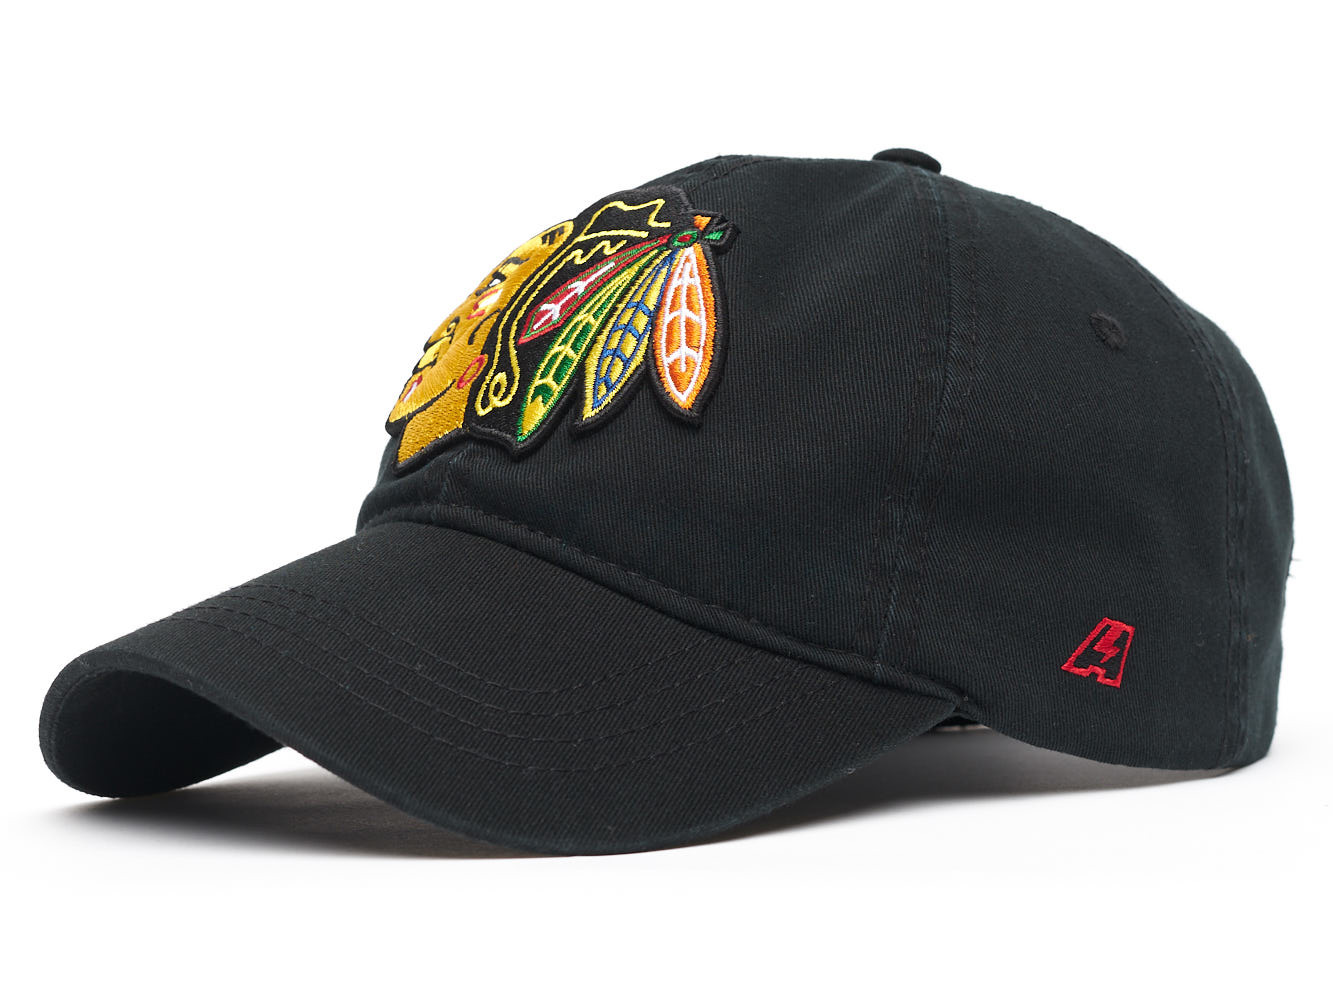 Бейсболка NHL Chicago Blackhawks облегченная